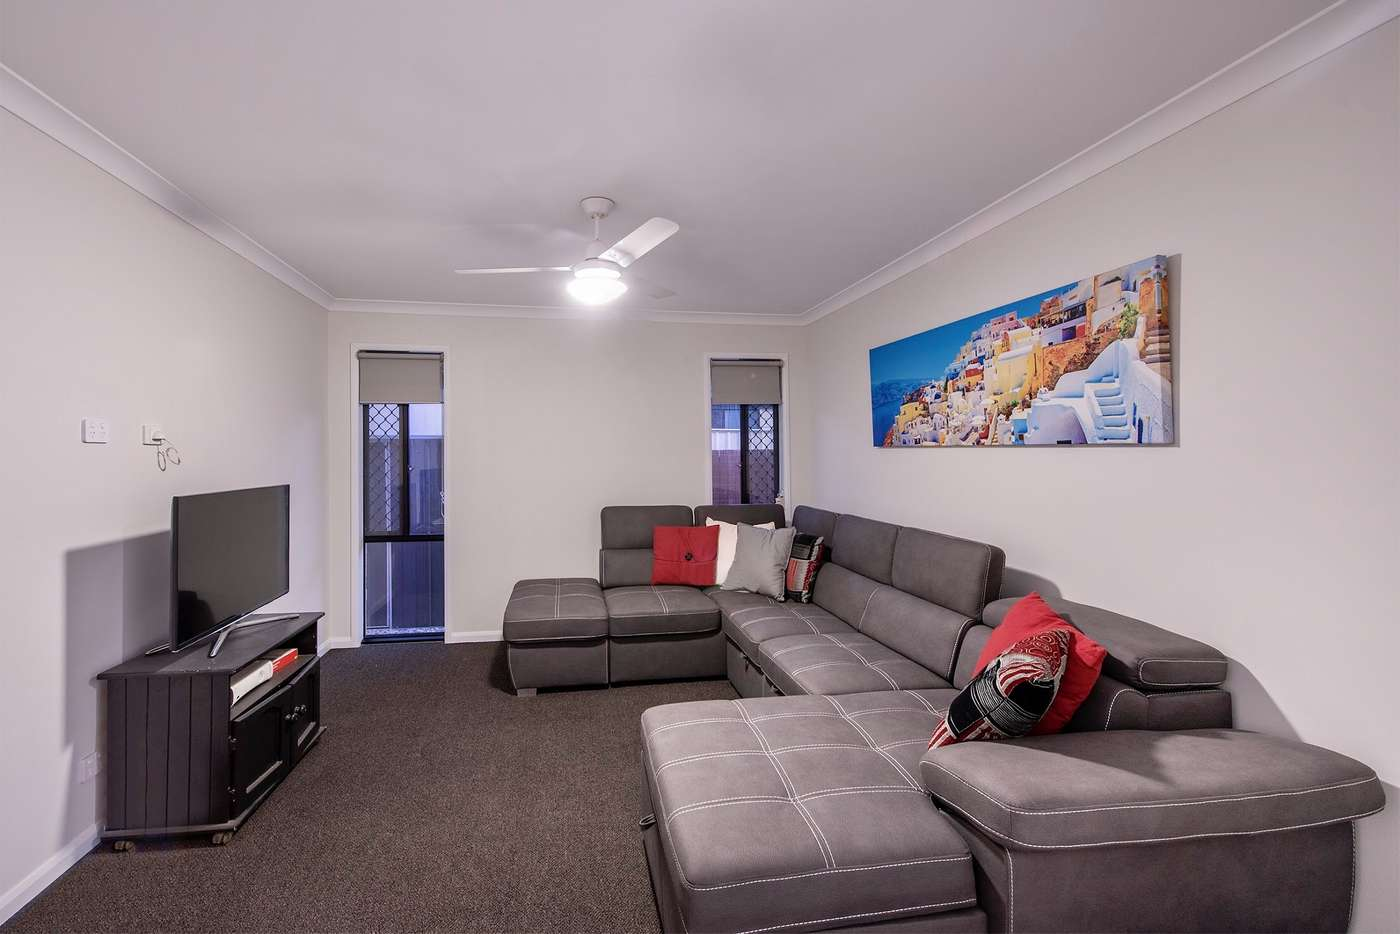 Fifth view of Homely house listing, 11 Curtis St, Burpengary East QLD 4505